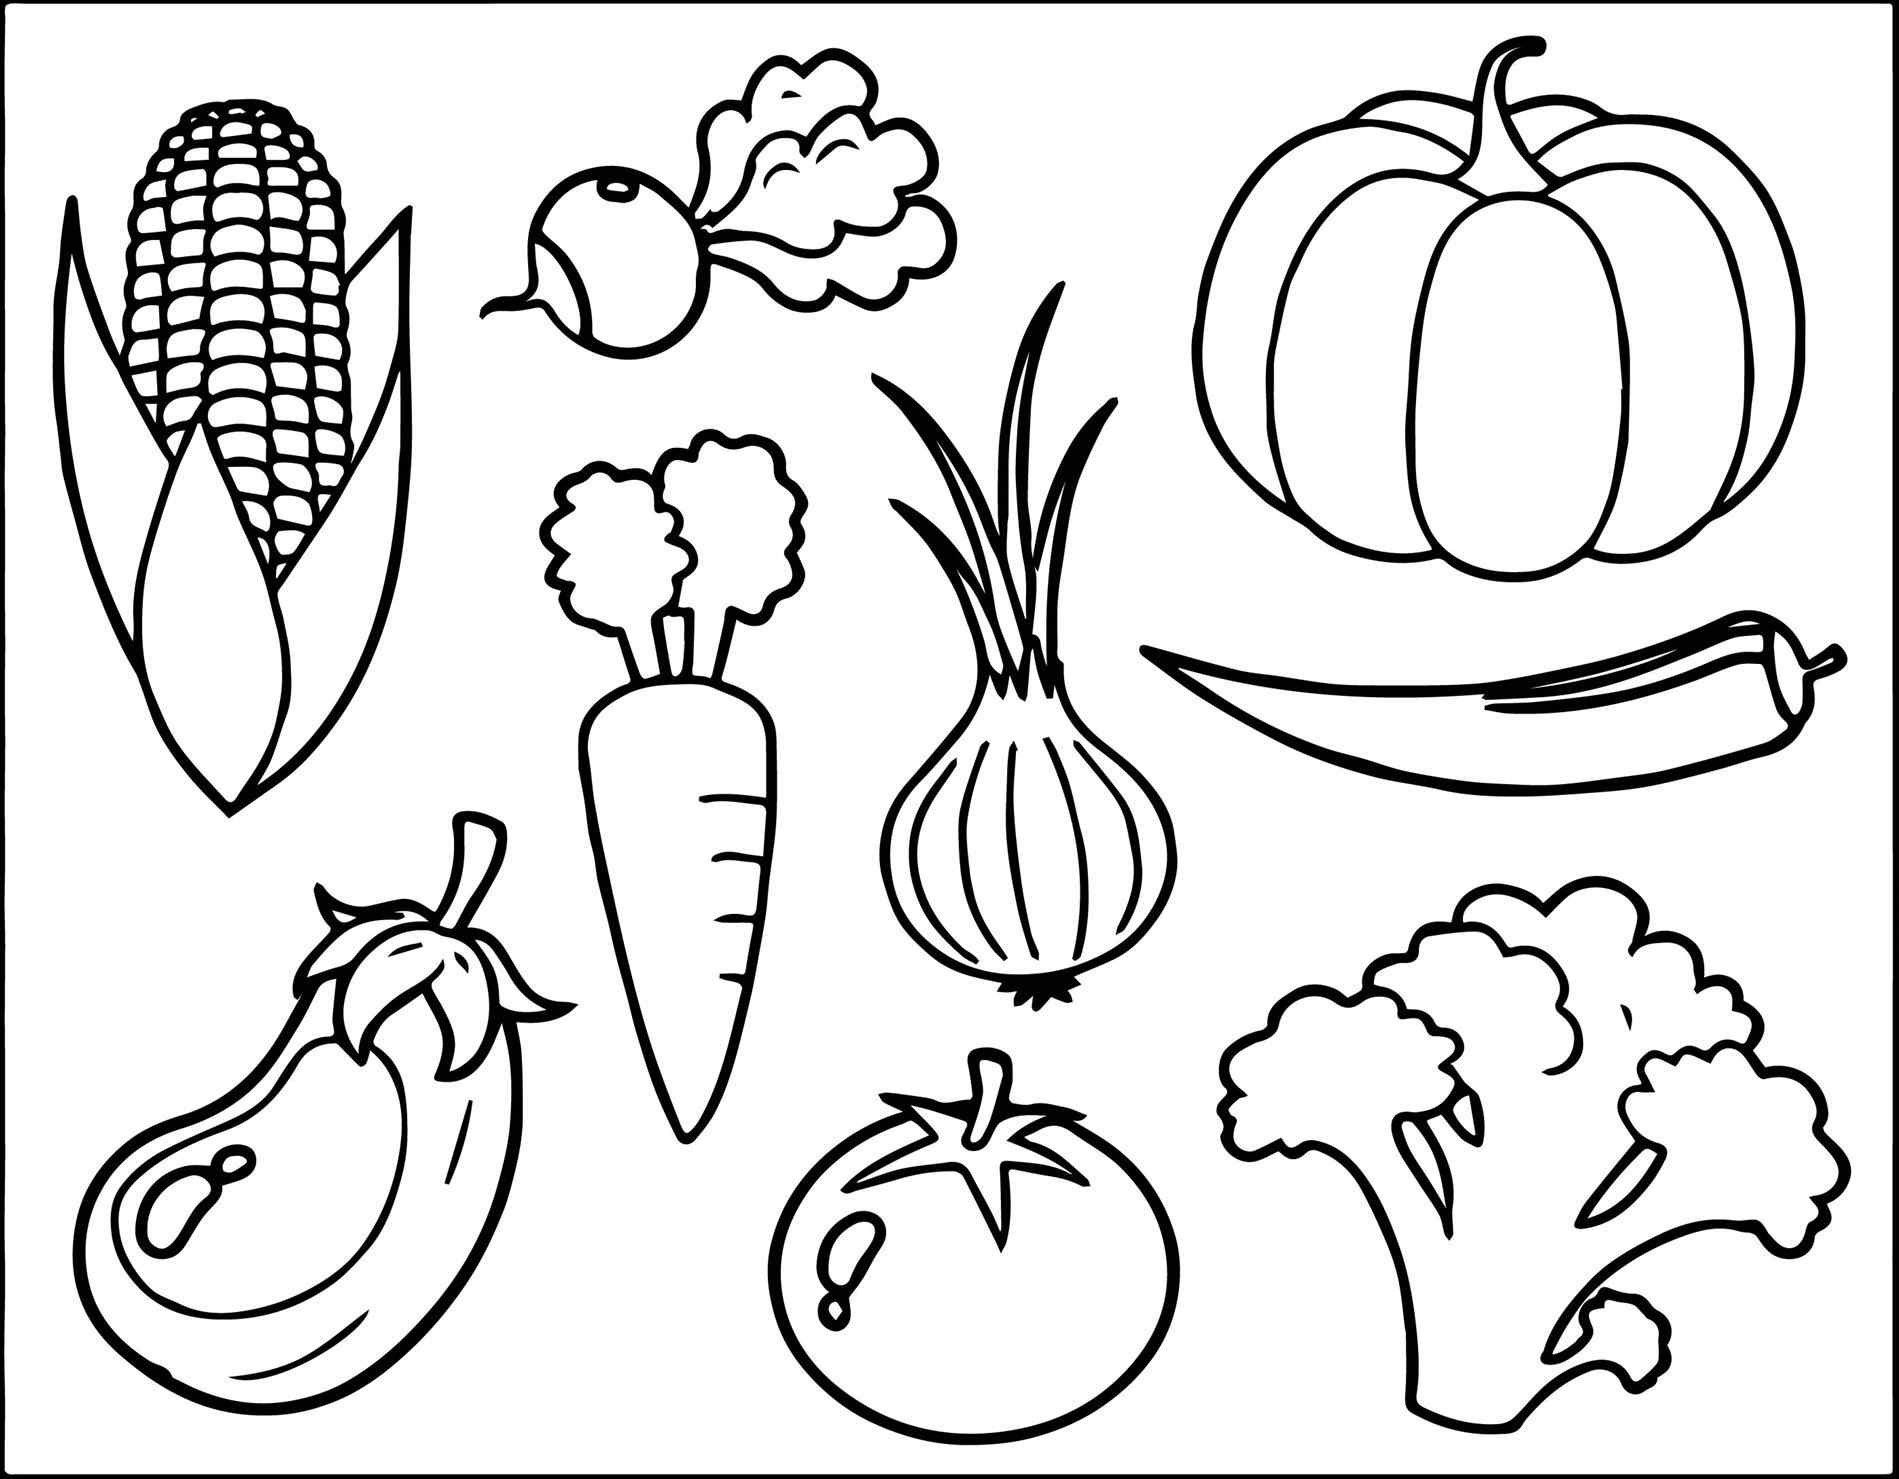 edible food coloring coloring pages of food coloring pages fruit coloring coloring edible food